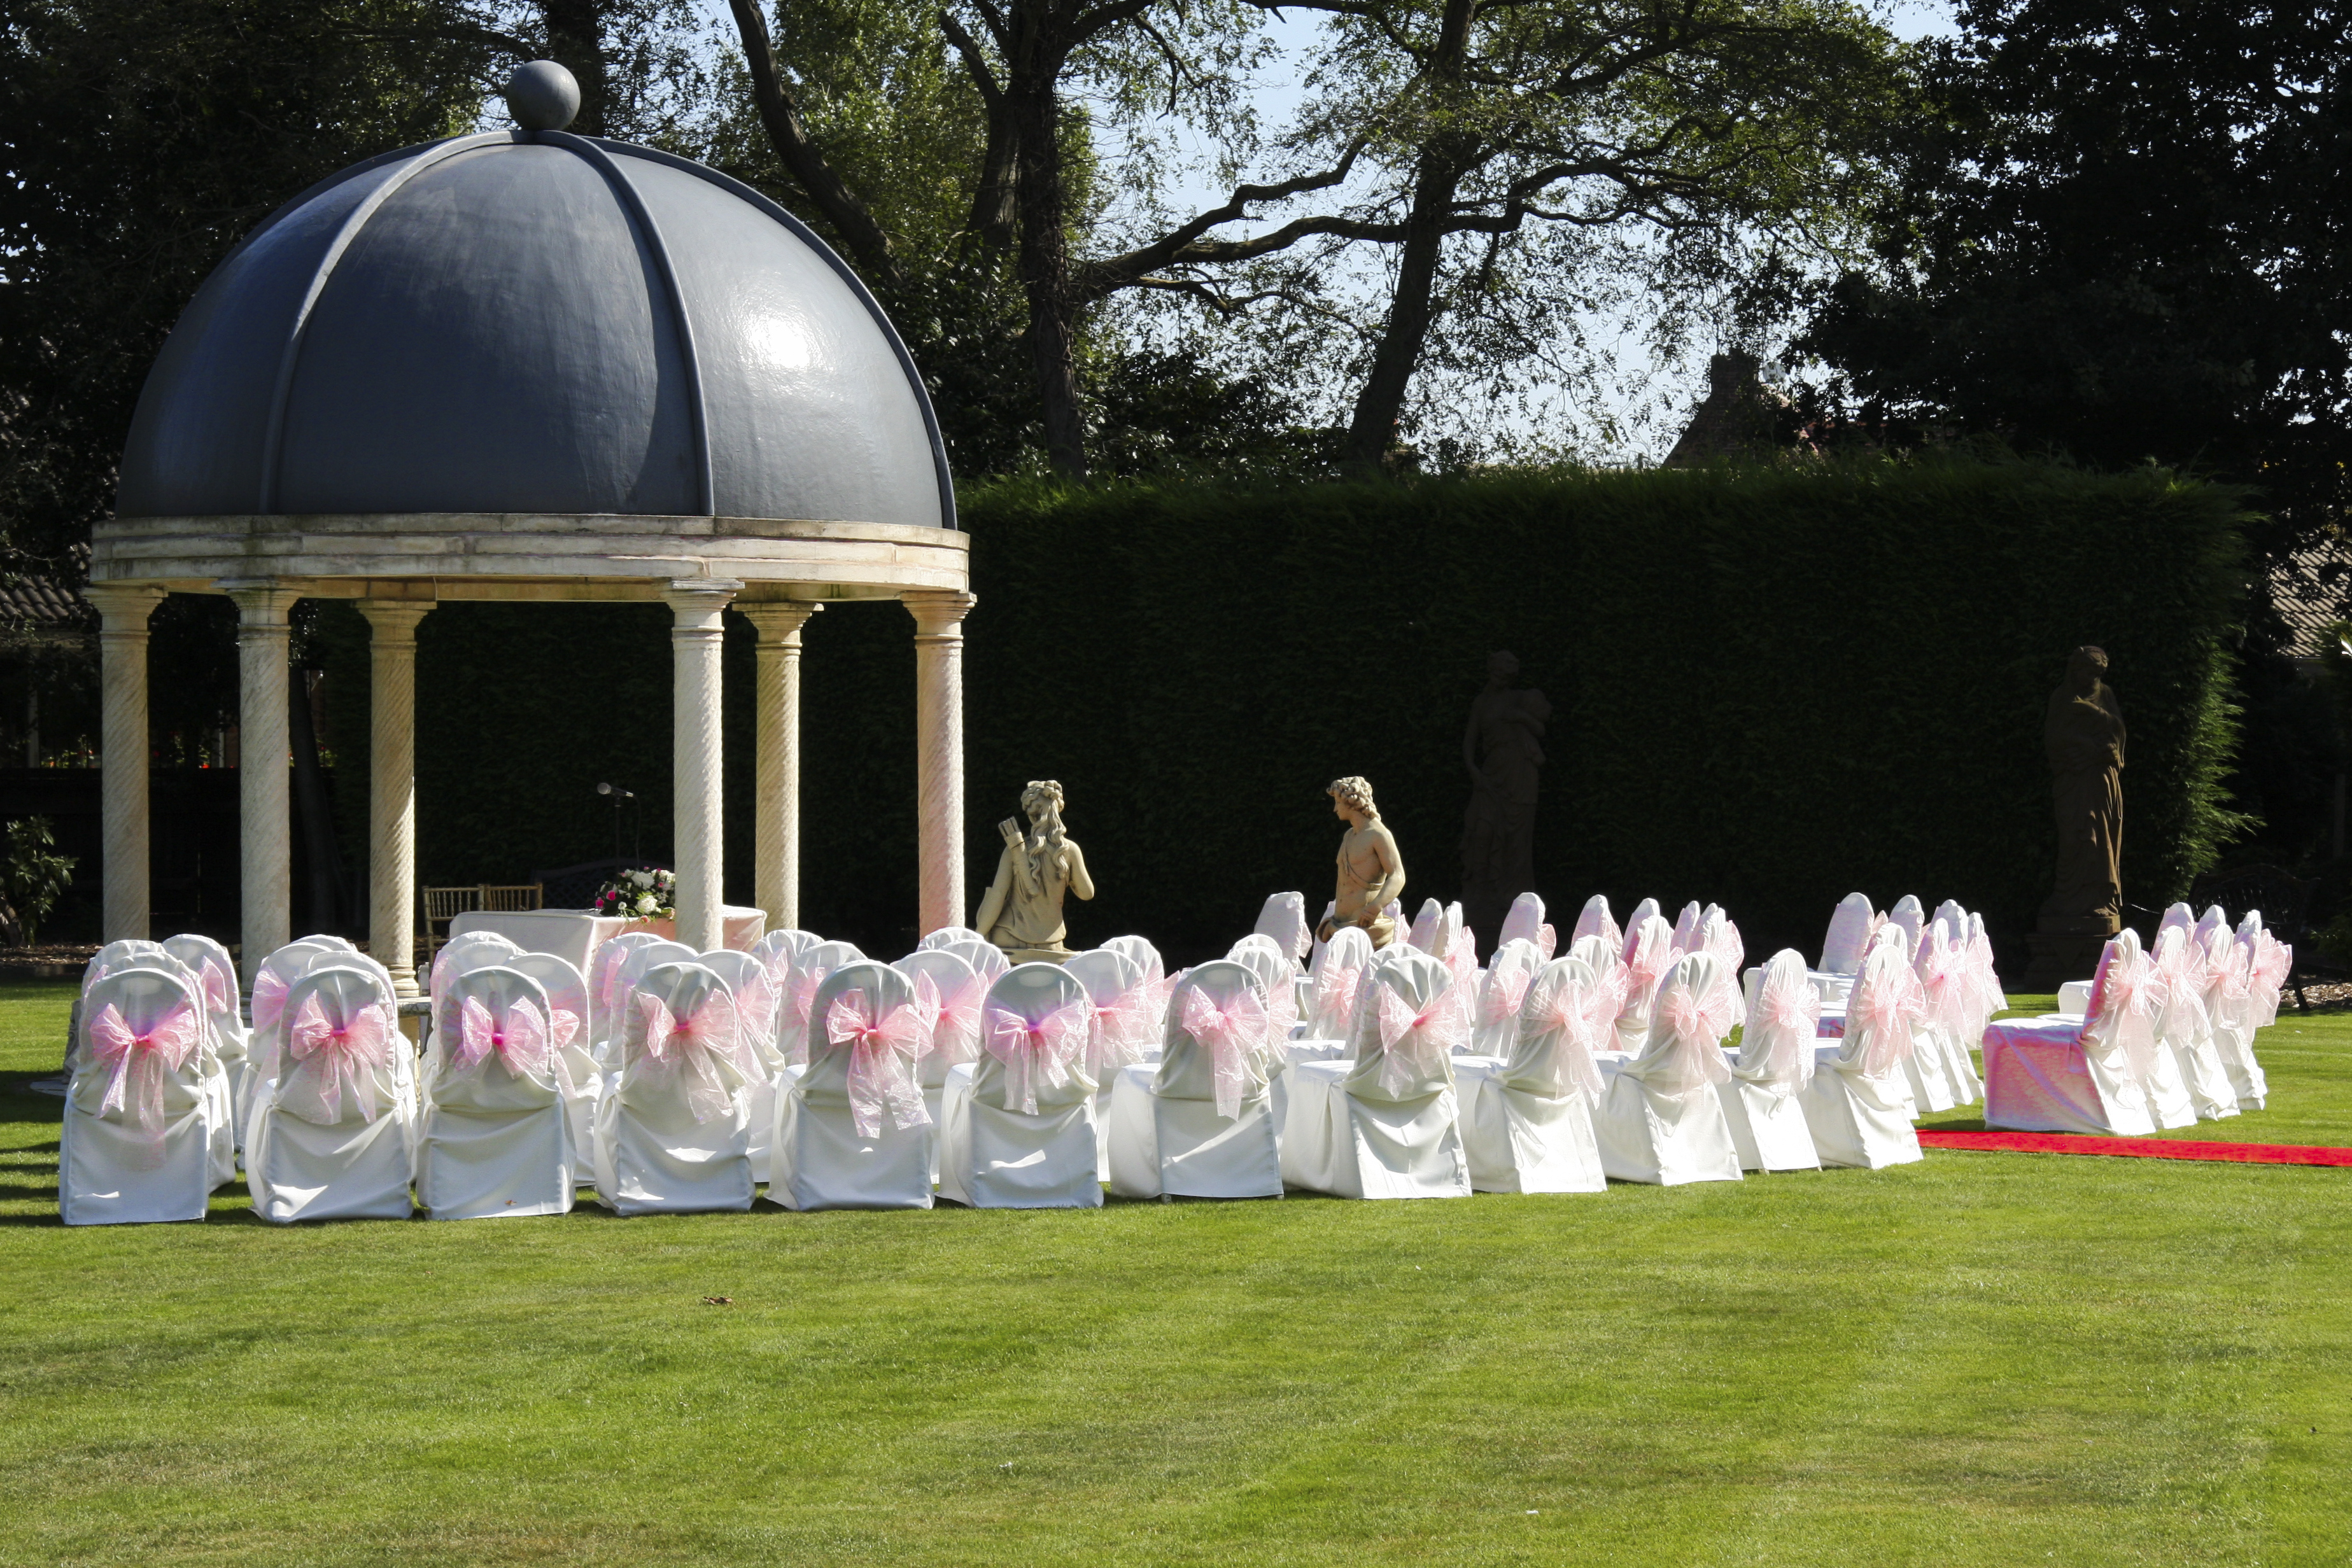 Outdoor Wedding Ideas Tips From The Experts: Garden Wedding: Tips For A Beautiful Wedding